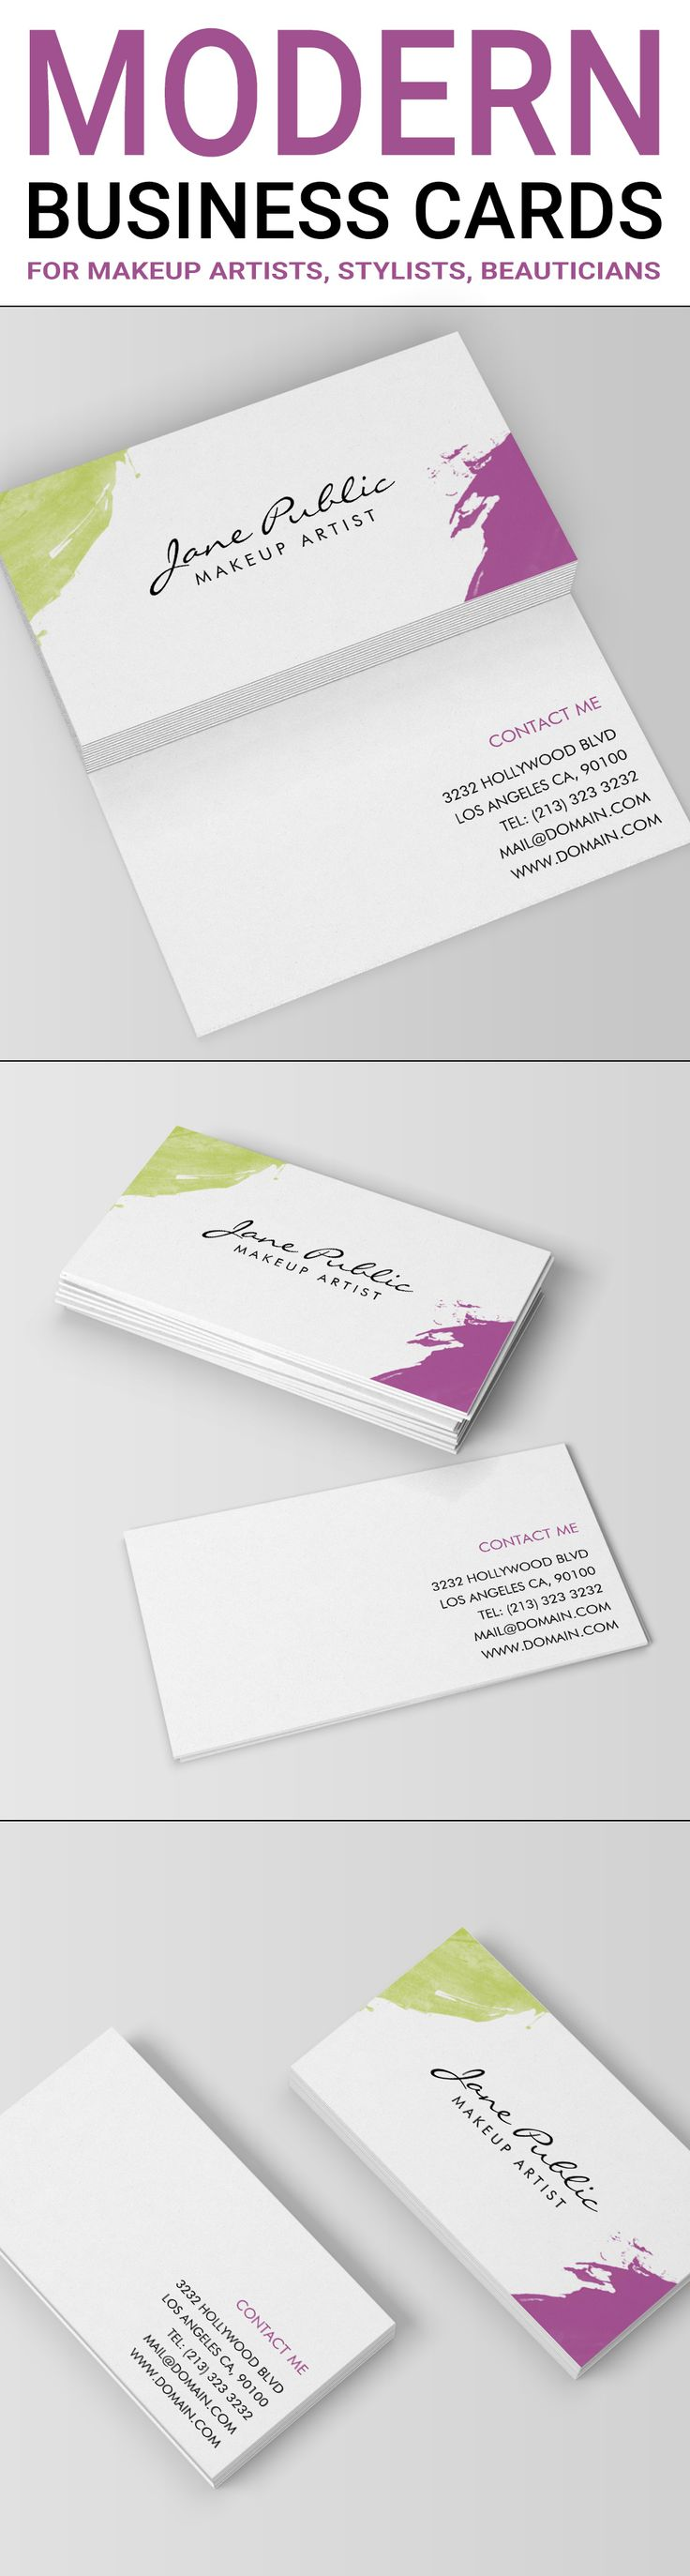 363 best business card showcase images on pinterest business card a modern business cards design with colorful green and purple painted corners this simple reheart Image collections